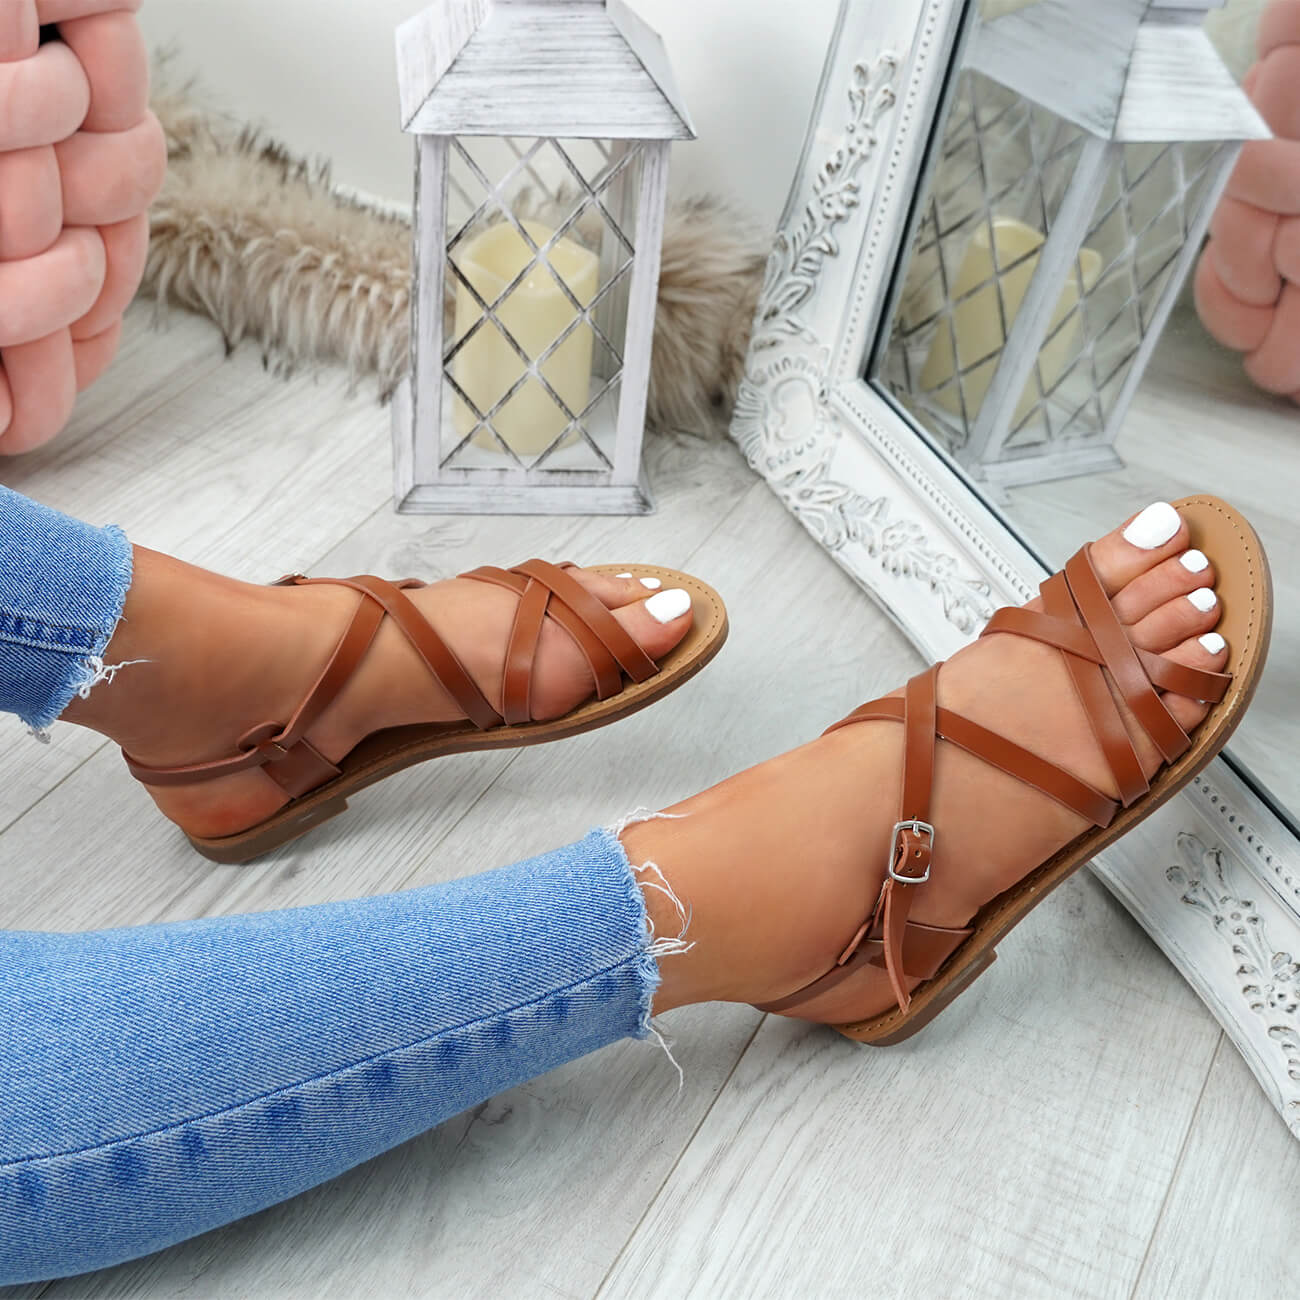 WOMENS-LADIES-ANKLE-STRAP-PEEP-TOE-BUCKLE-FLAT-SANDALS-SUMMER-CASUAL-SHOES thumbnail 12